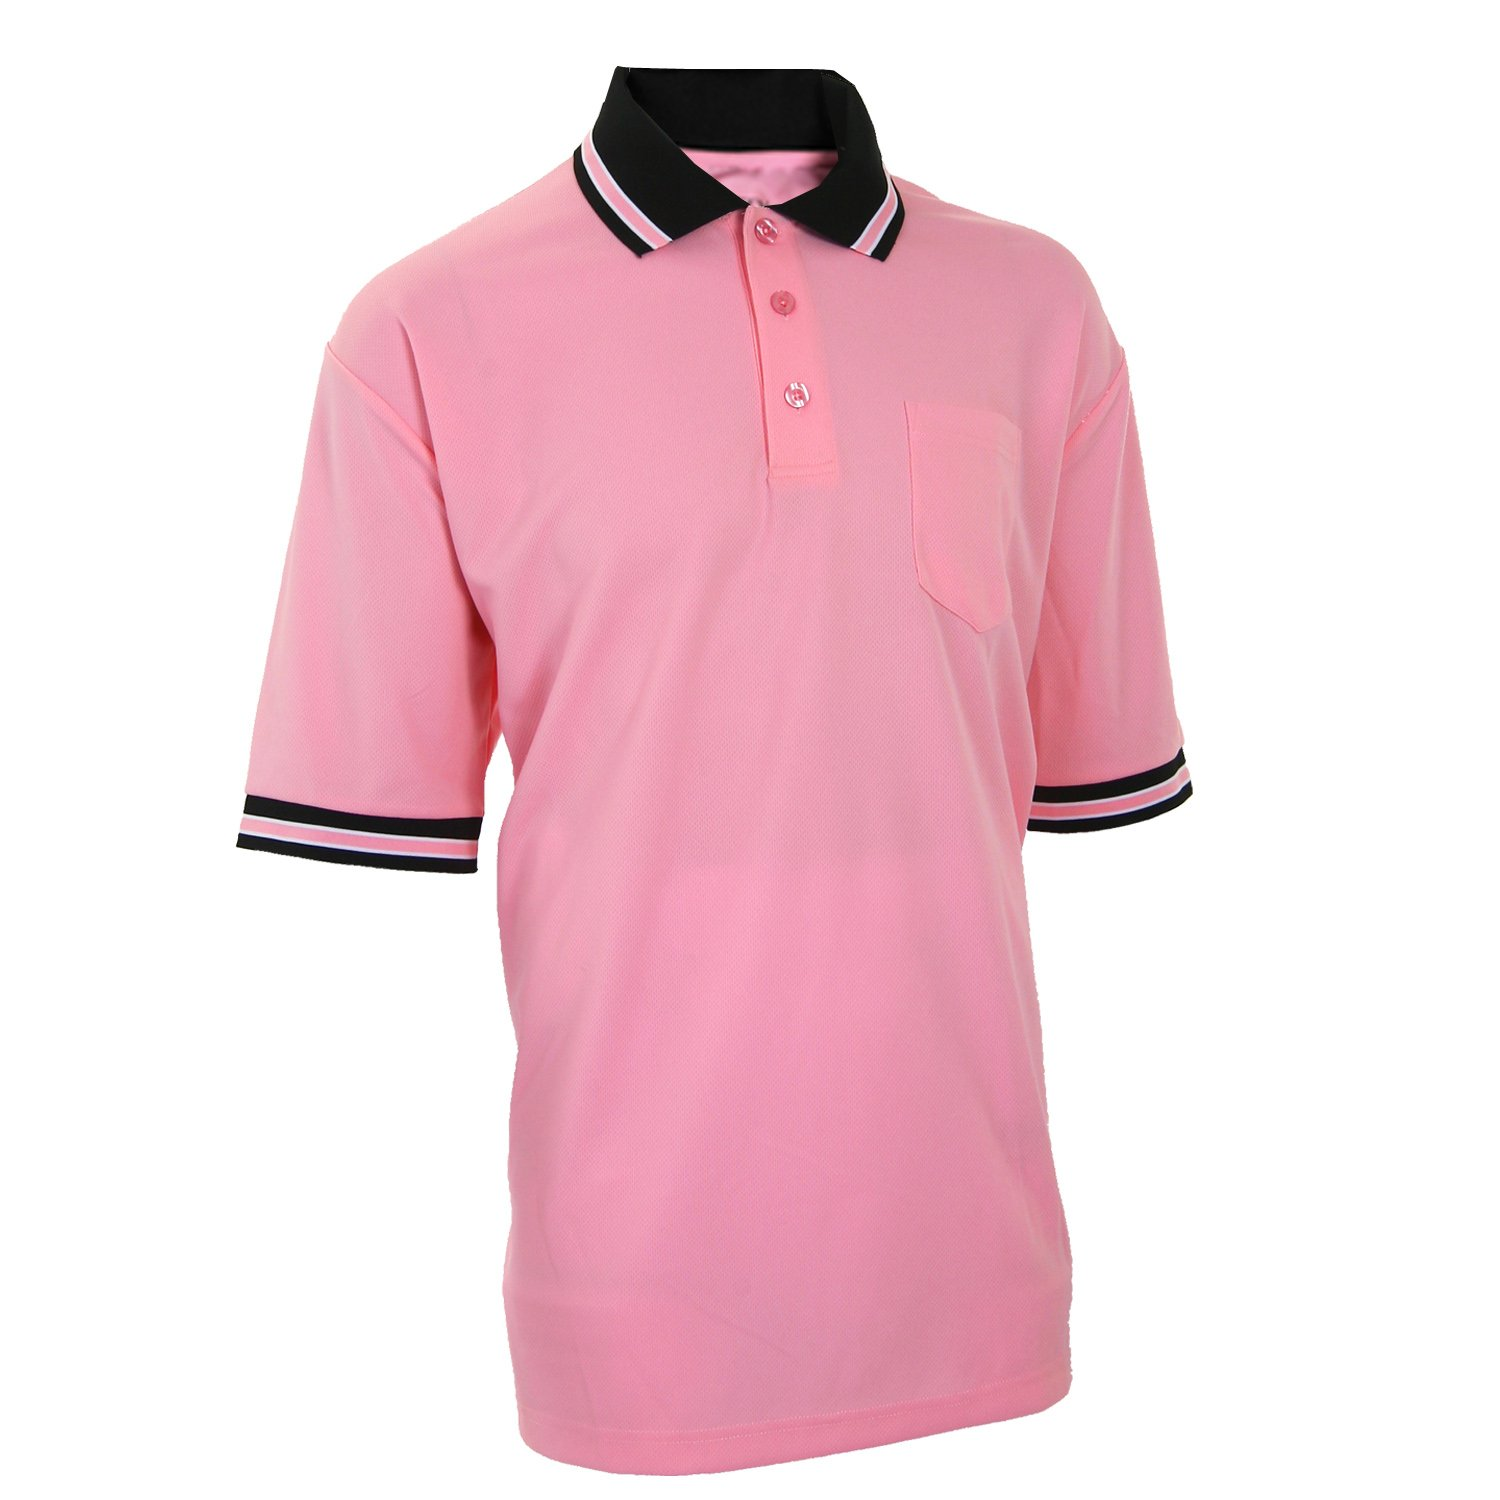 Adams USA Smitty Major League Style Short Sleeve Umpire Shirt with Front Chest Pocket (Pink, 4X-Large)